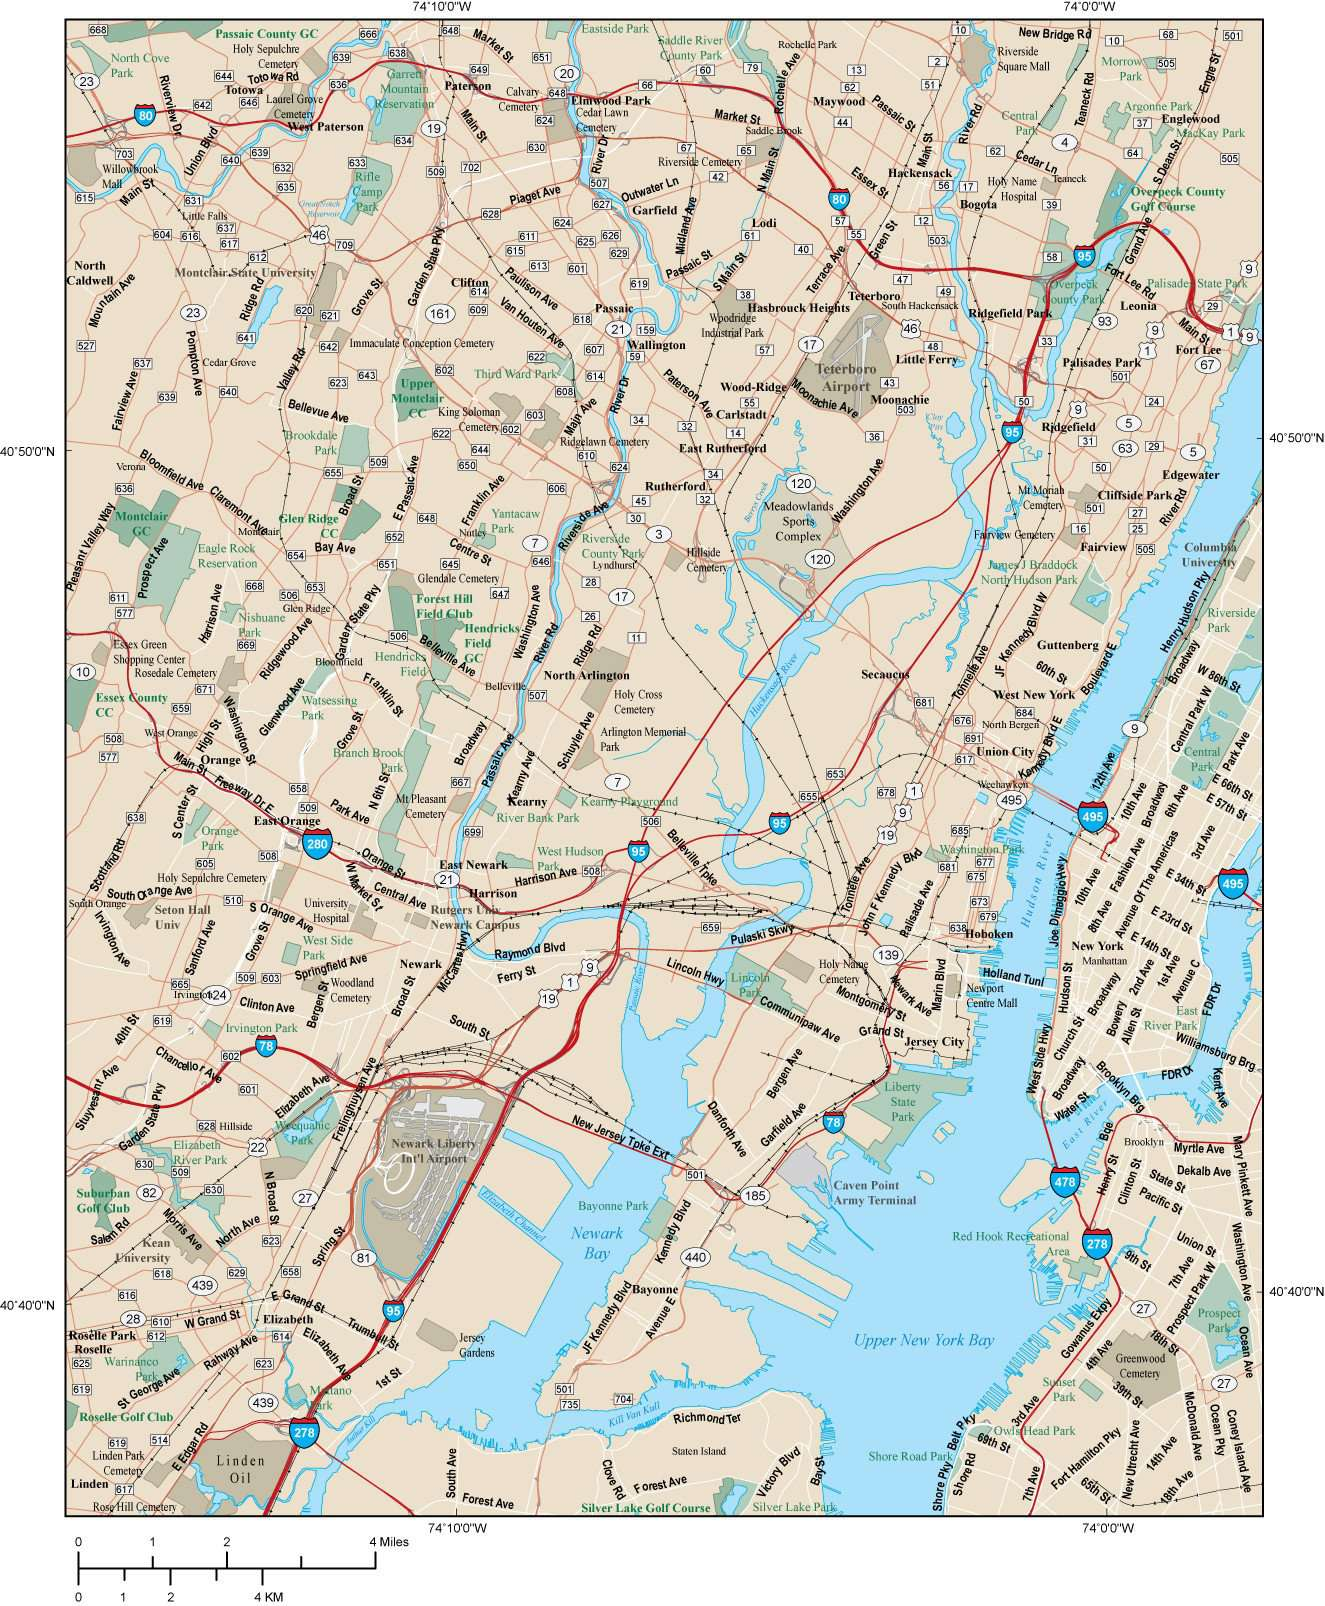 Newark Nj Map Newark Map Adobe Illustrator vector format – Map Resources